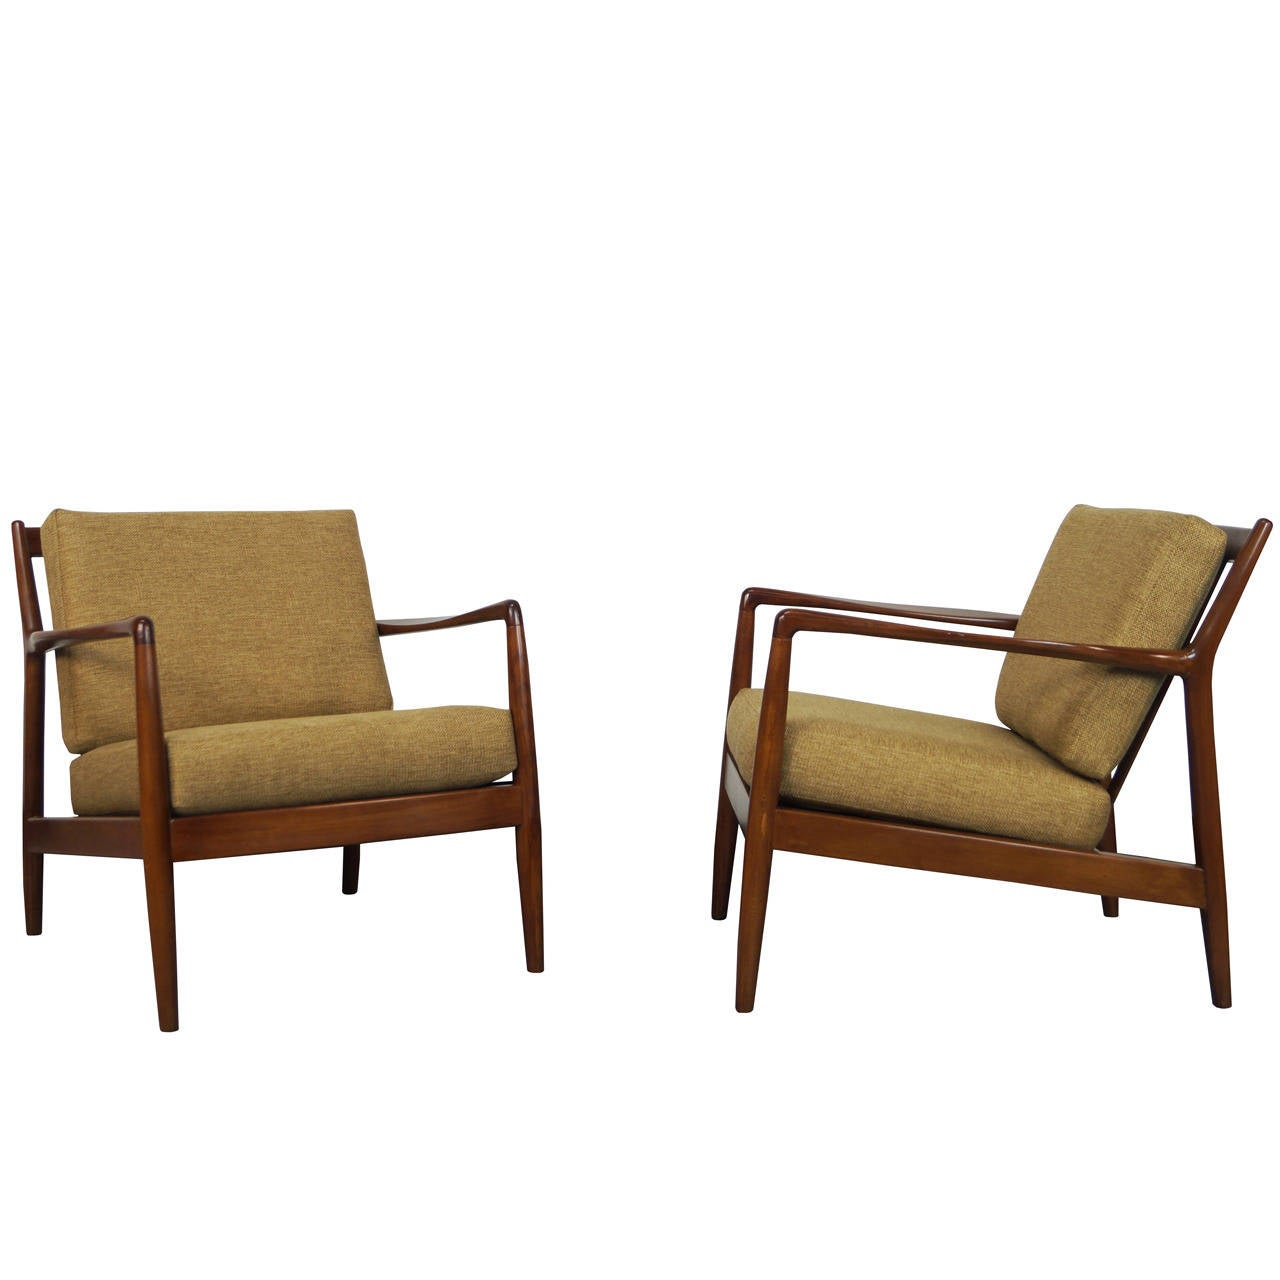 midcentury lounge chairs by folke ohlsson at stdibs - midcentury lounge chairs by folke ohlsson